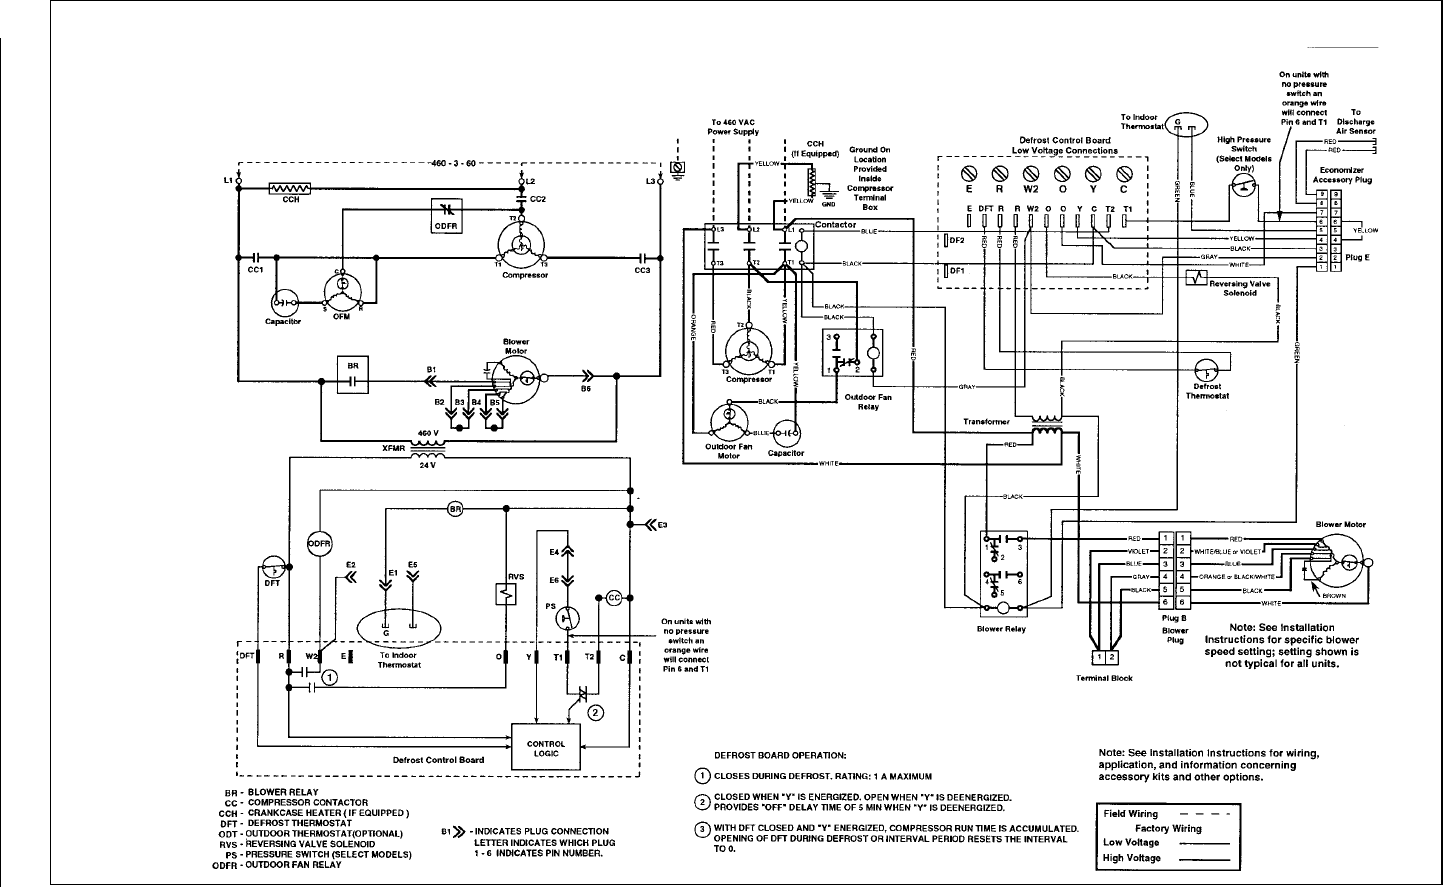 Gas Furnace Schematic Wiring Diagram on Honeywell Thermostat Wiring Color Code